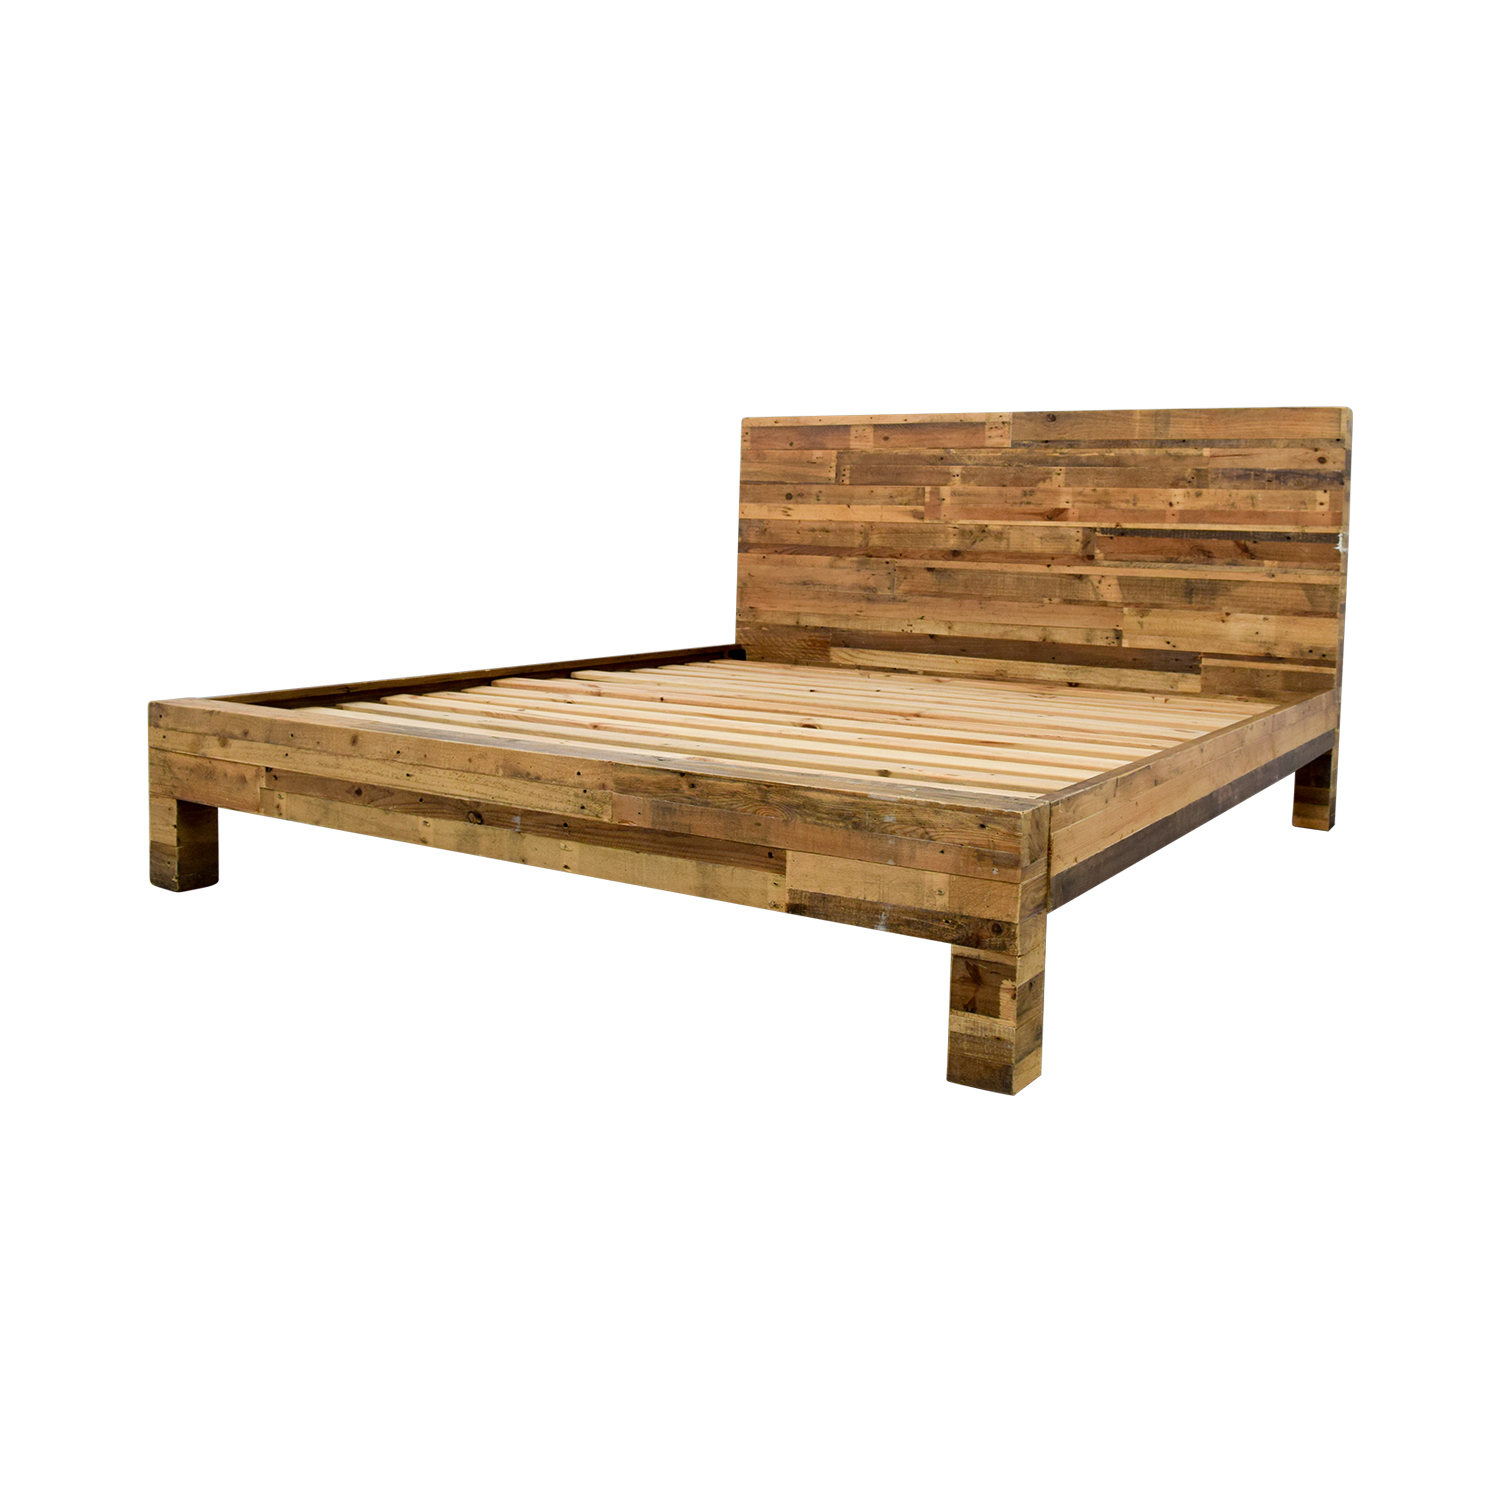 58% OFF - West Elm West Elm Emmerson® Reclaimed Natural Wood King Bed / Beds